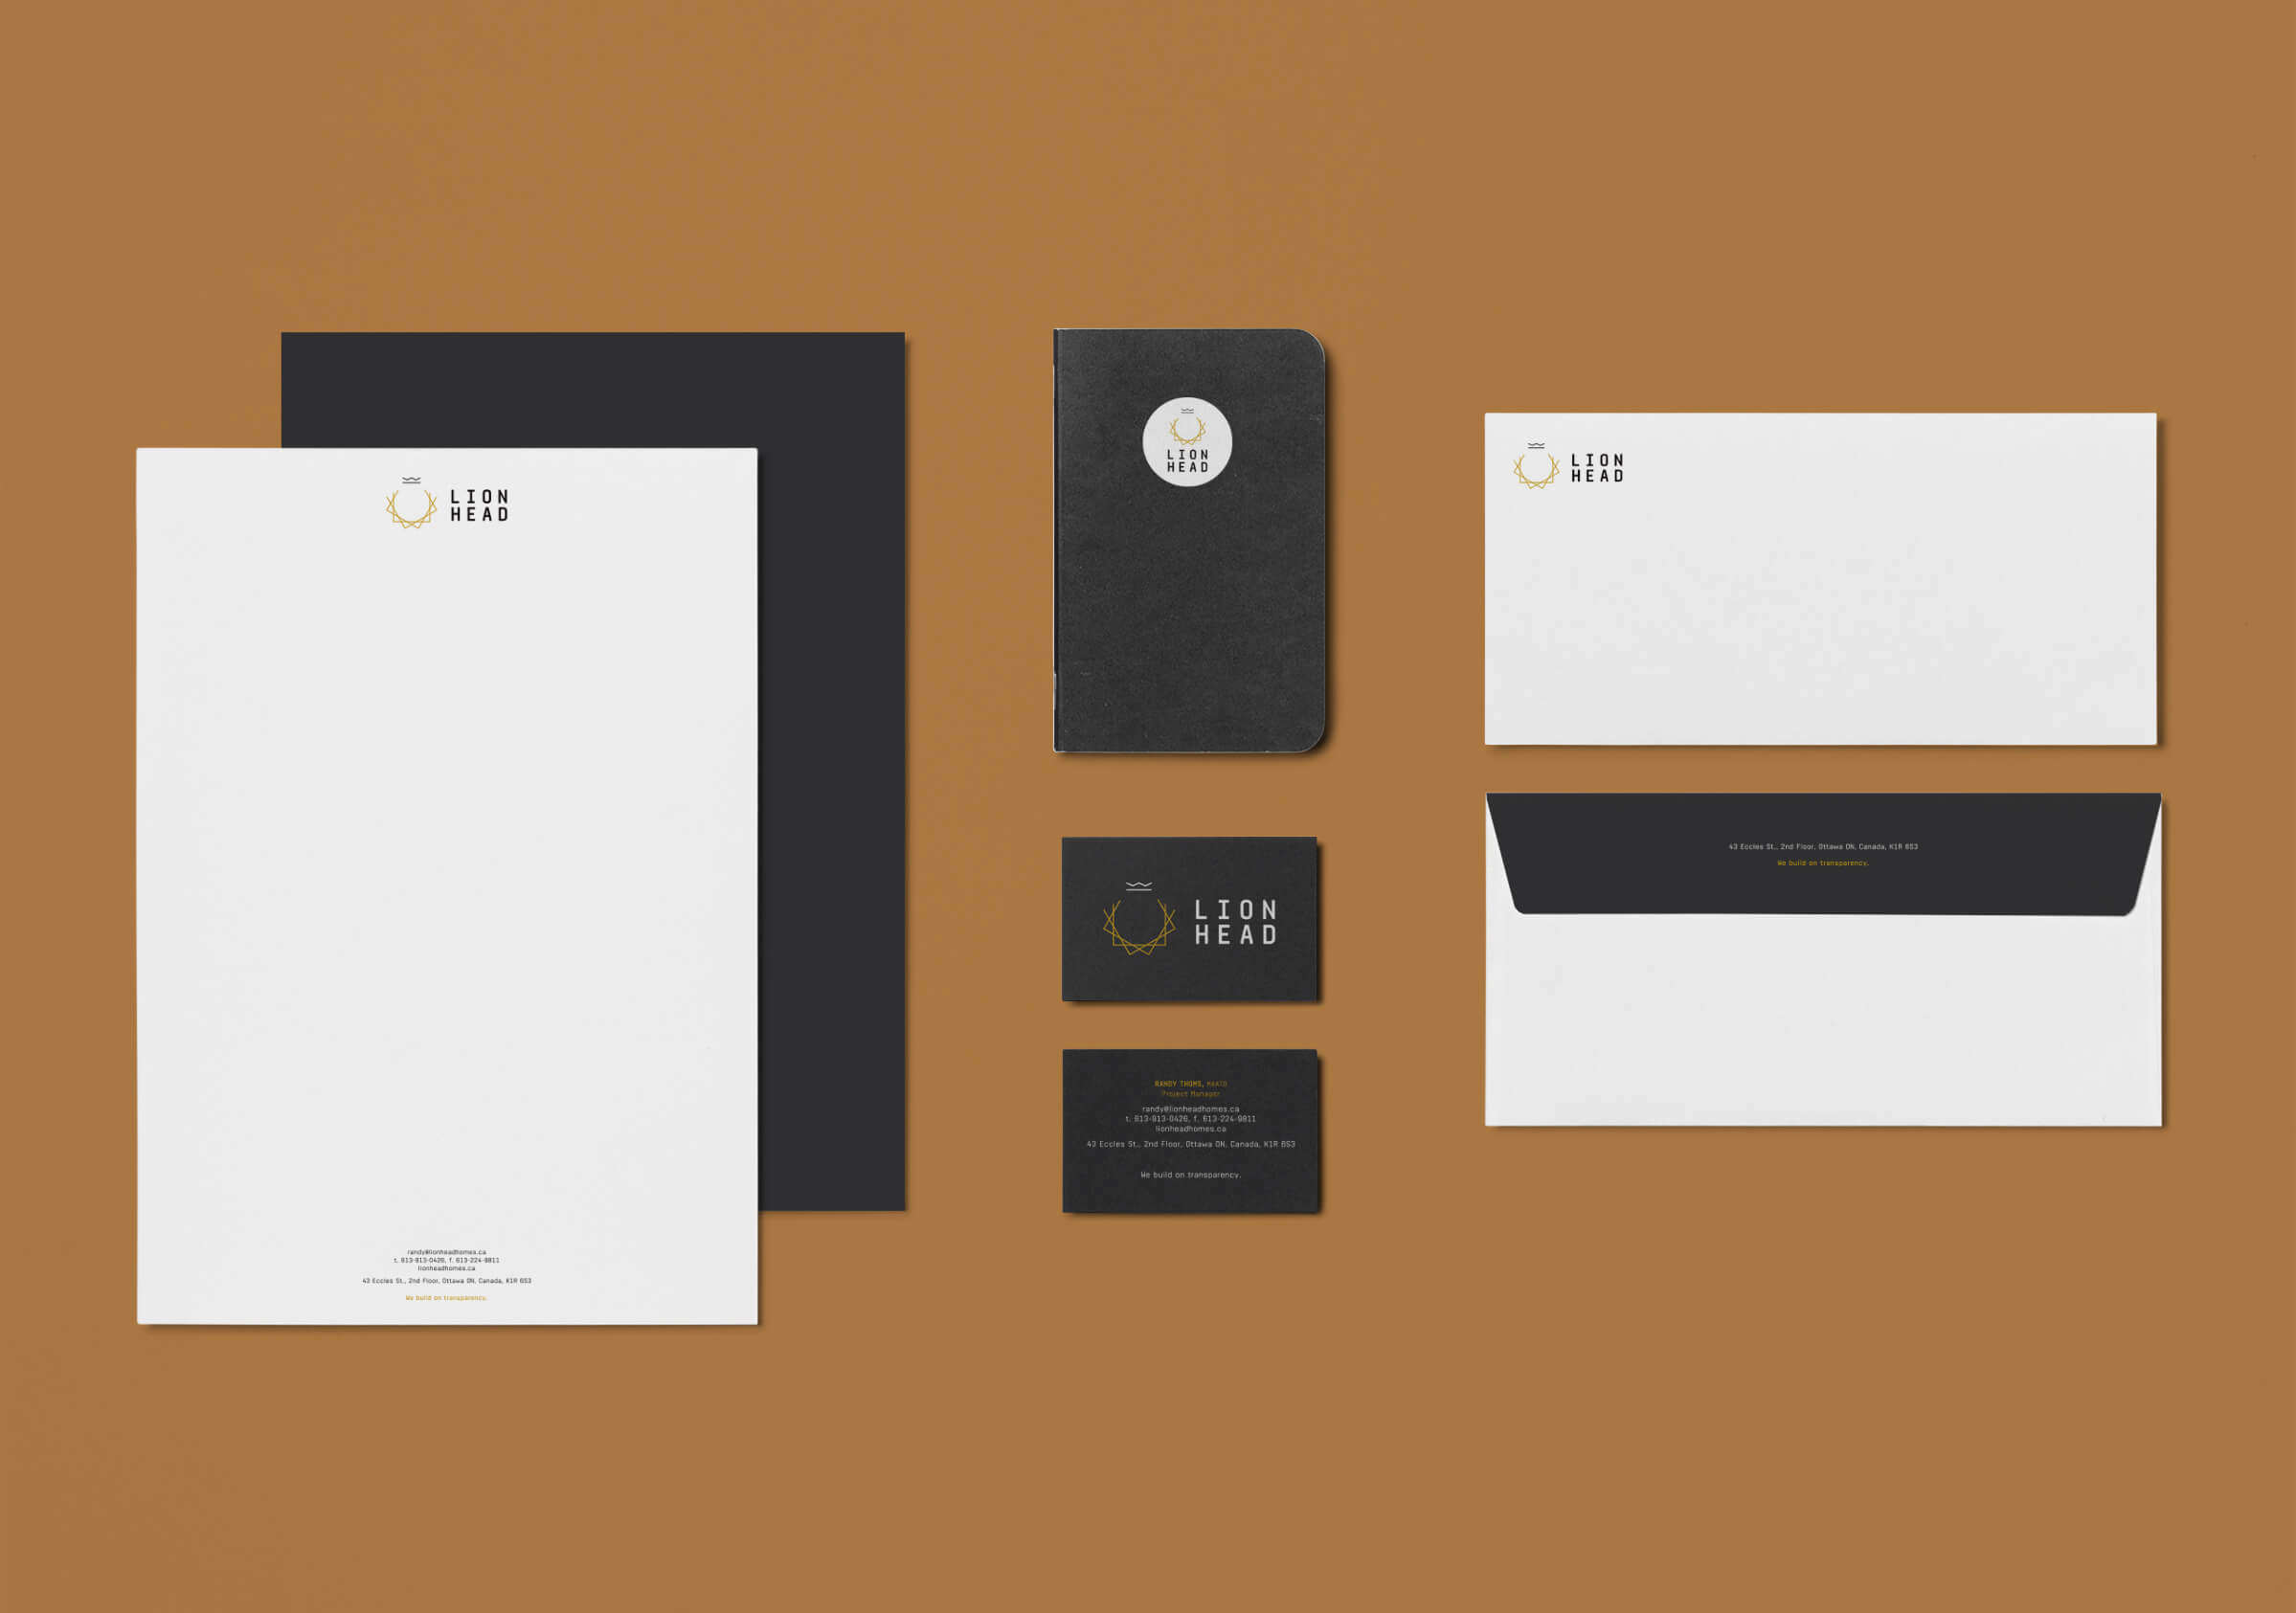 Stationery for Lionhead, an Ottawa building firm by Graphic Design Studio idApostle